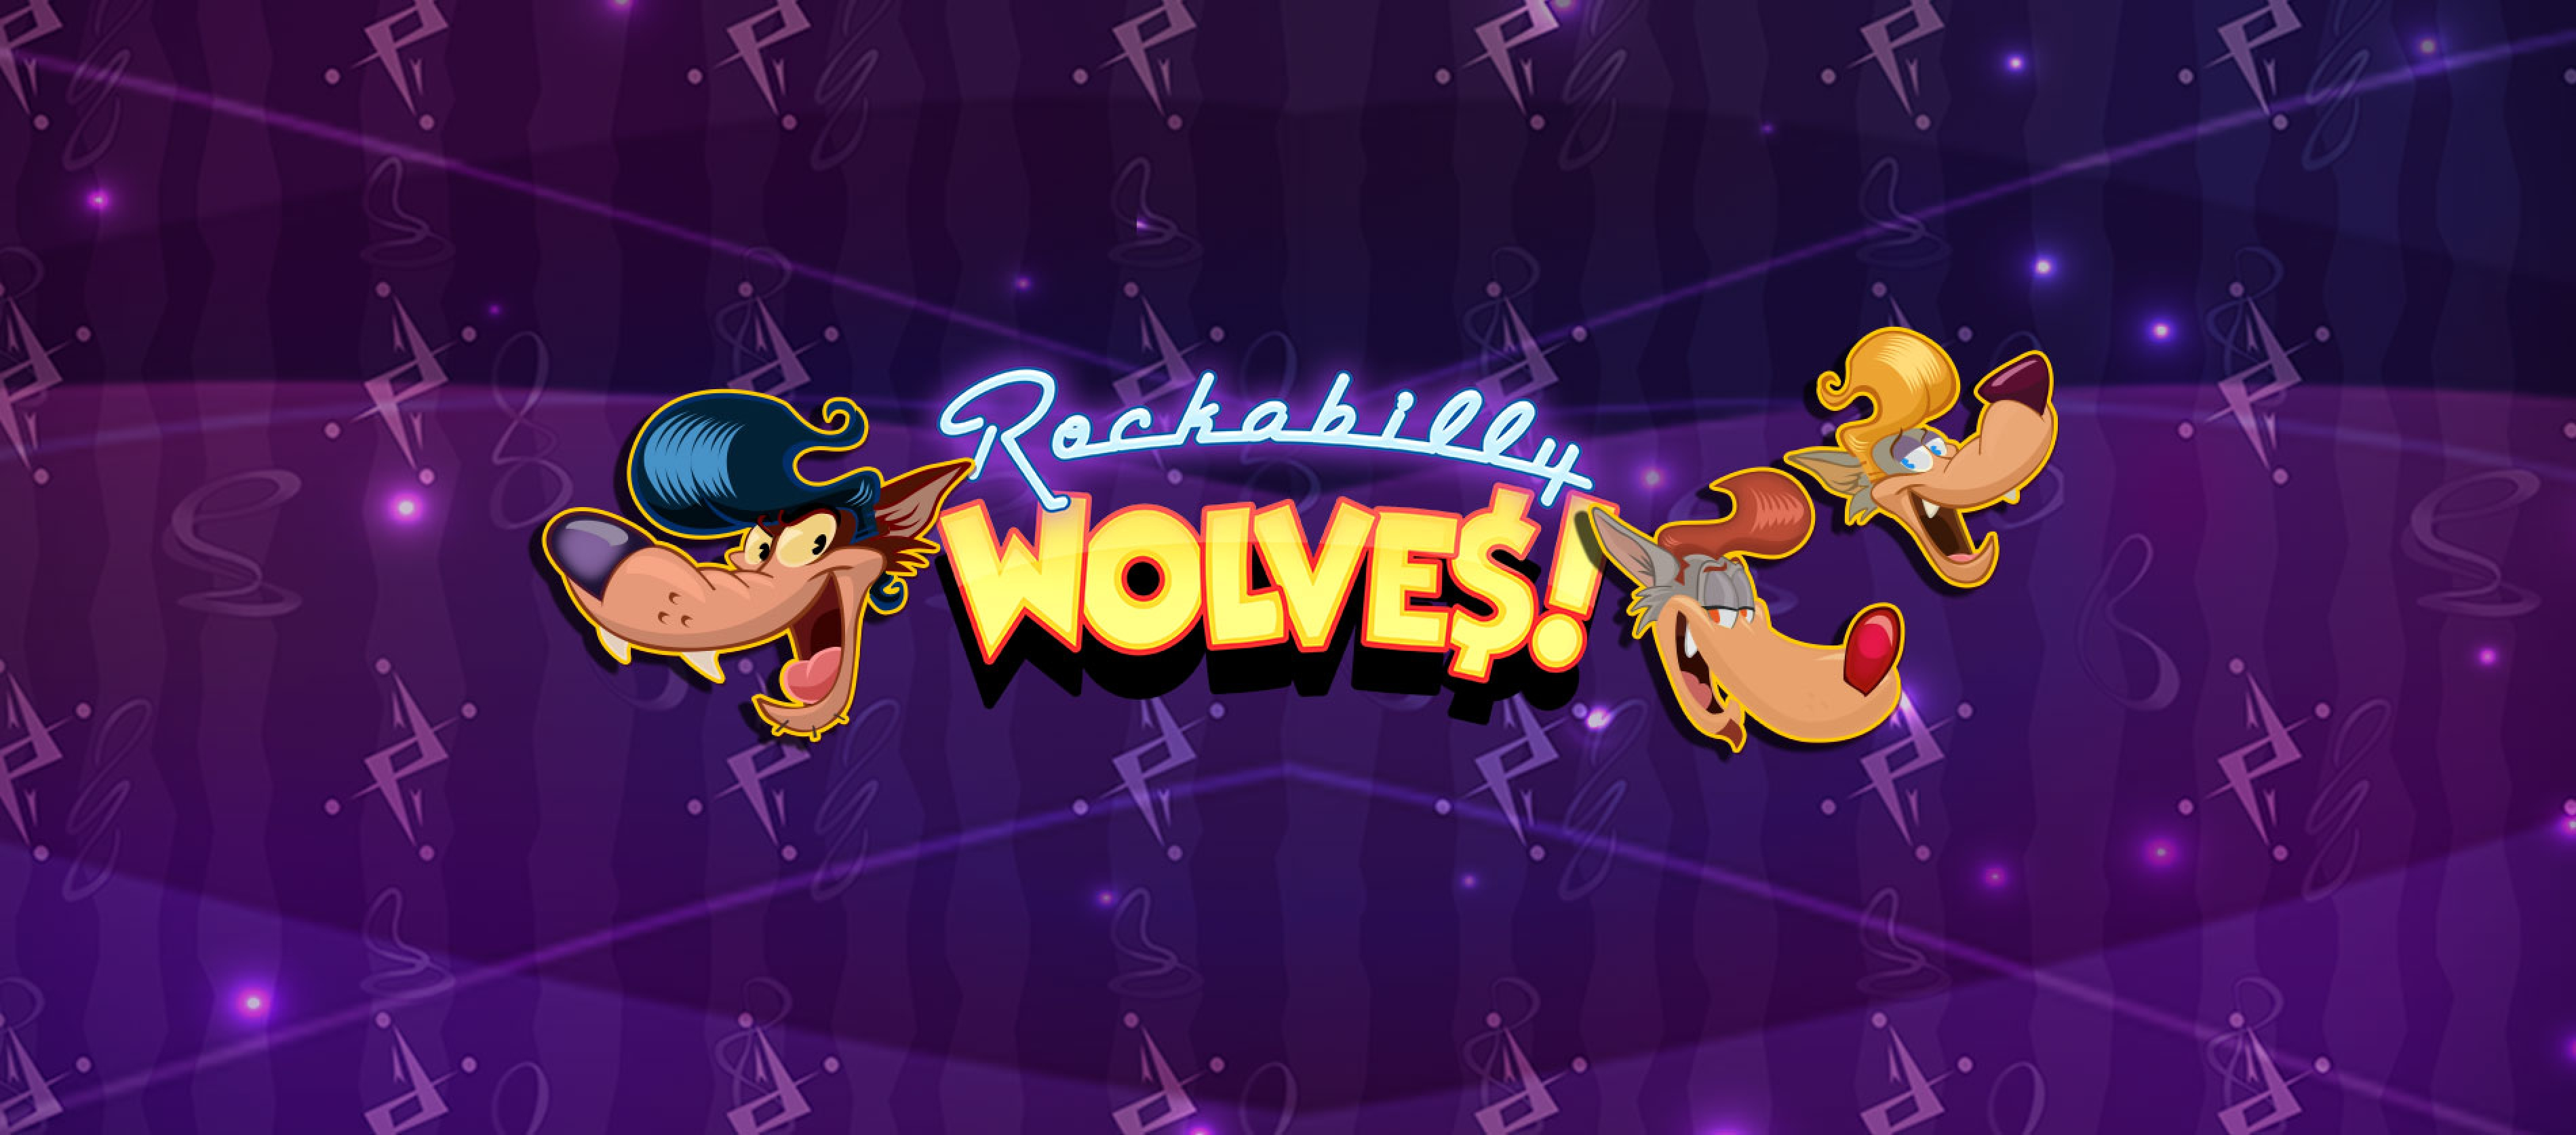 Win Money in Rockabilly Wolves Free Slot Game by Just For The Win